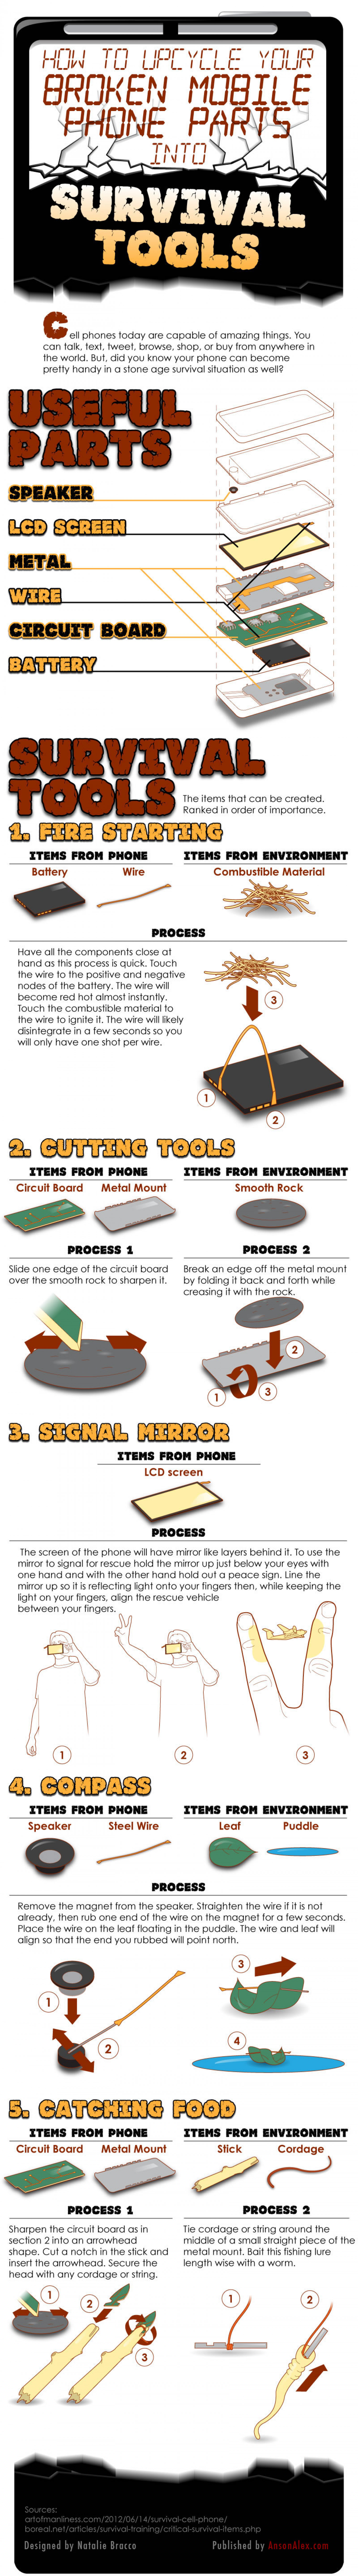 How to Upcycle Your Broken Mobile Phone Parts into Survival Tools Infographic